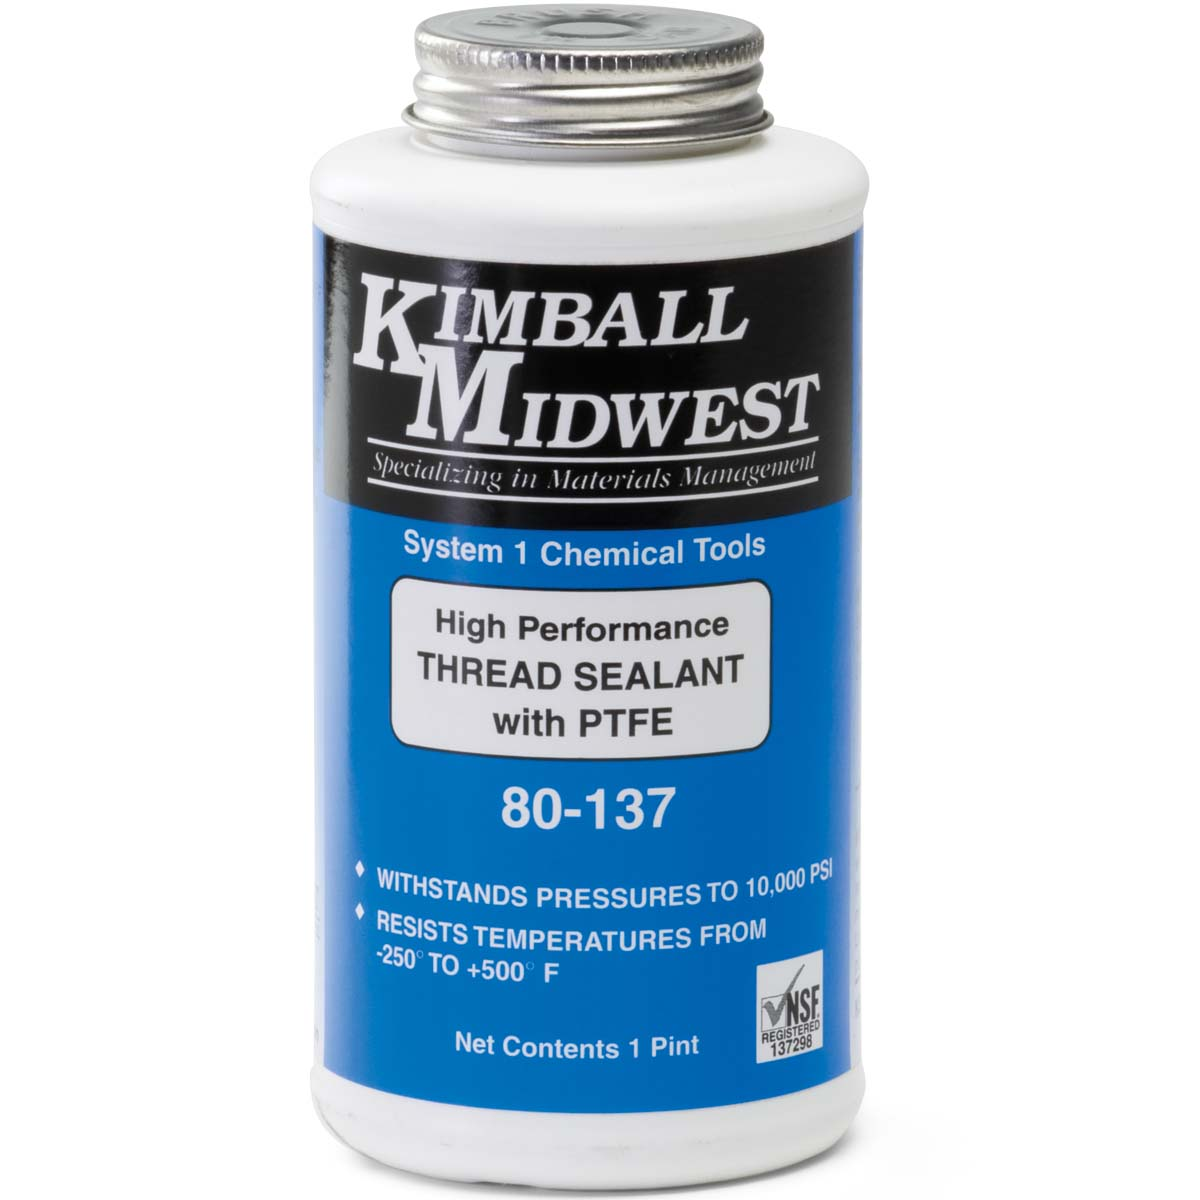 Thread Sealant with PTFE - Kimball Midwest